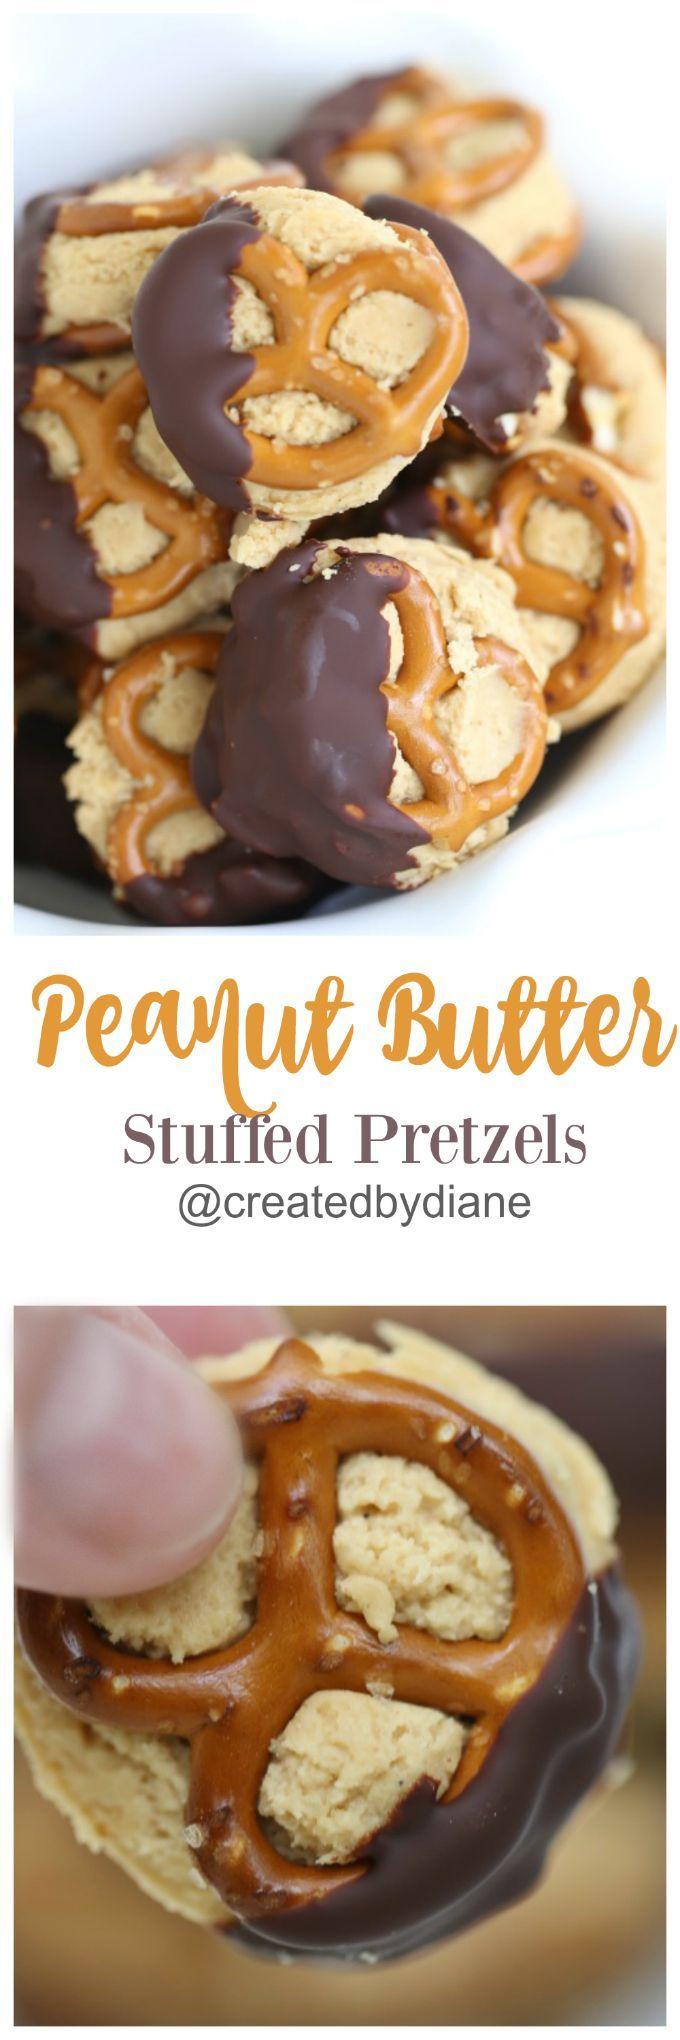 Sweet and salty snacking… who wouldn't love a treat like that?  Thesepeanut butter stuffed pretzels will have you wishing it was snack time! I don't know about you, but pretzels are a favorite quick snack around my house. They're crispy, crunchy, salty and oh-so-satisfying! I also love the many varied shapes they come in.Just keeps things fun, and I'm all about fun… especially delicious fun! Theykeepthings fun, and I'm all about fun… especially delicious fun! Of course, pretzels go with…